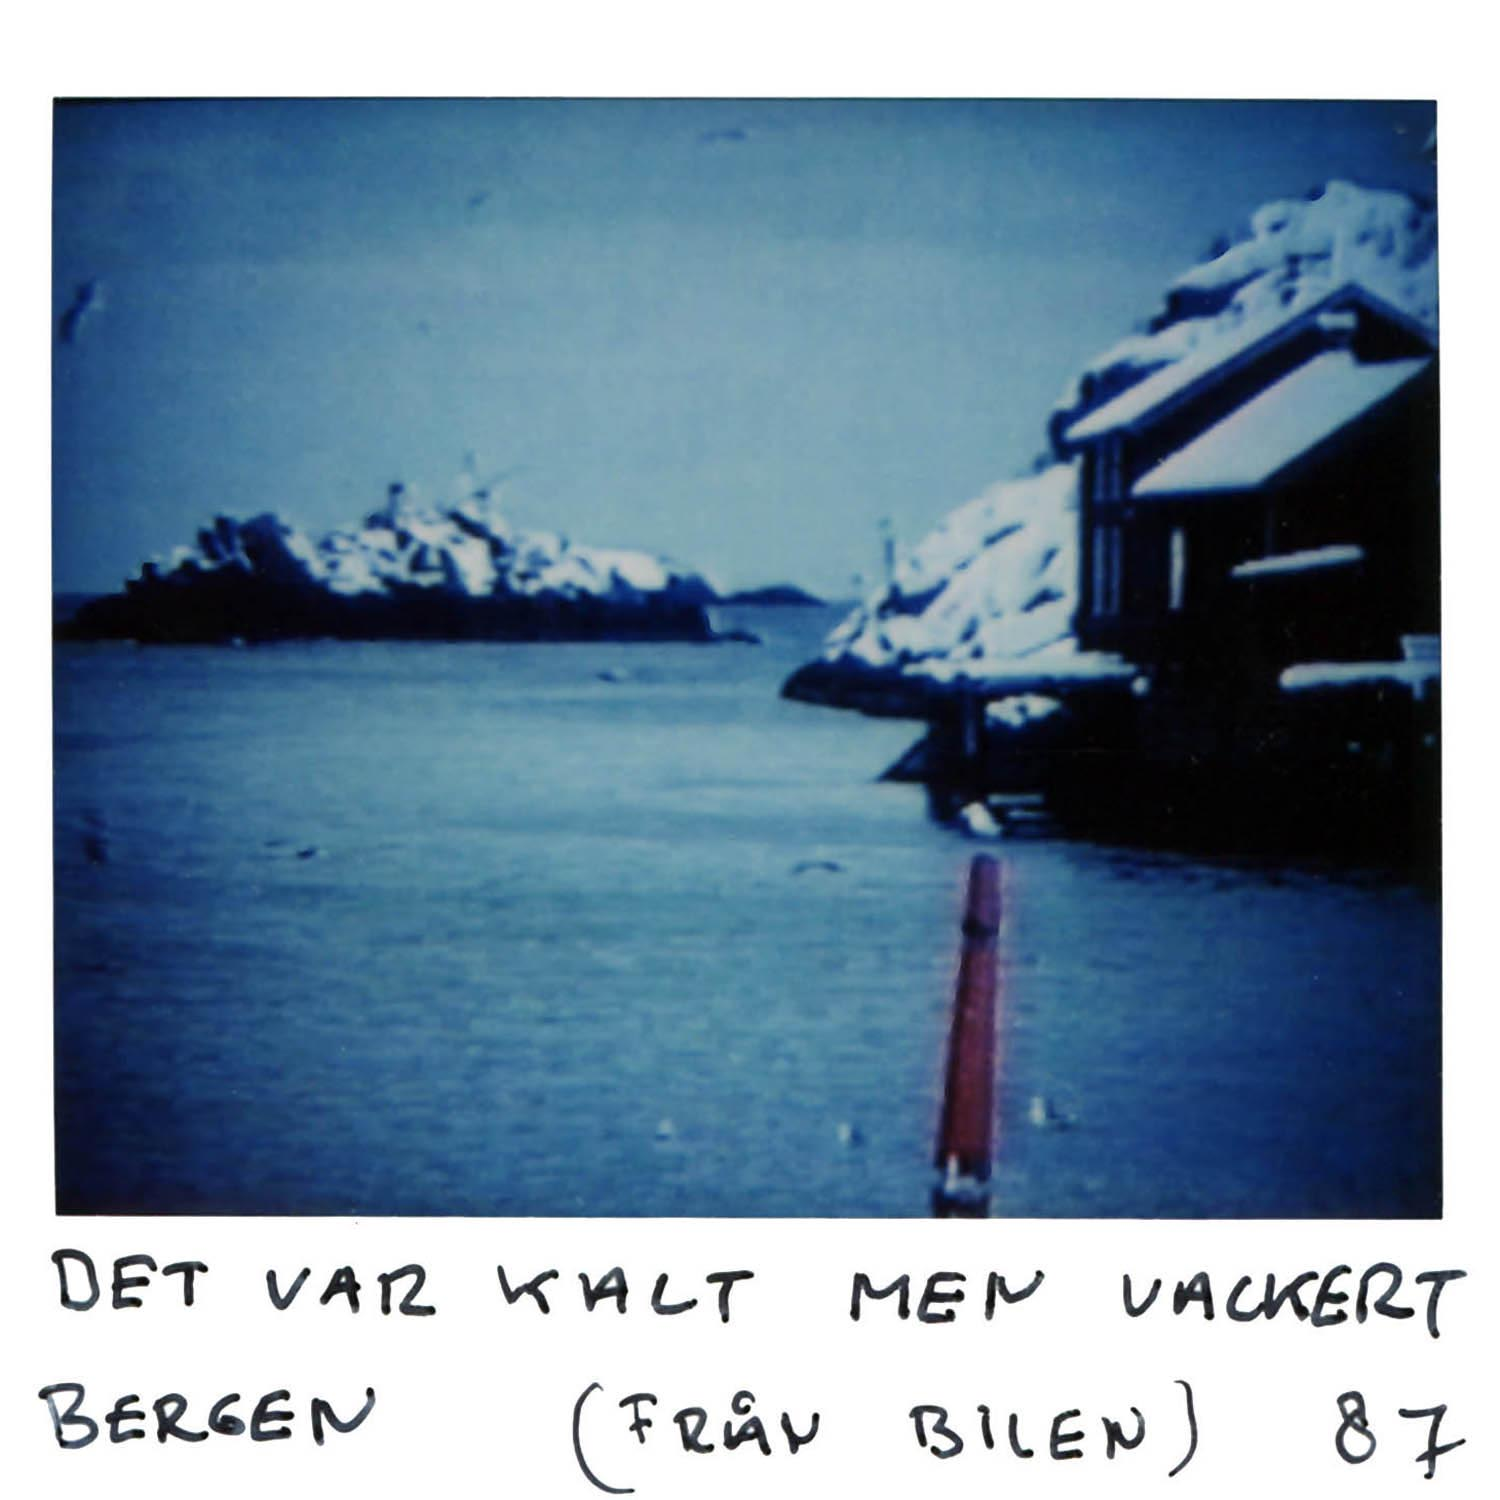 It was cold but beautiful  Bergen (from the car) -8